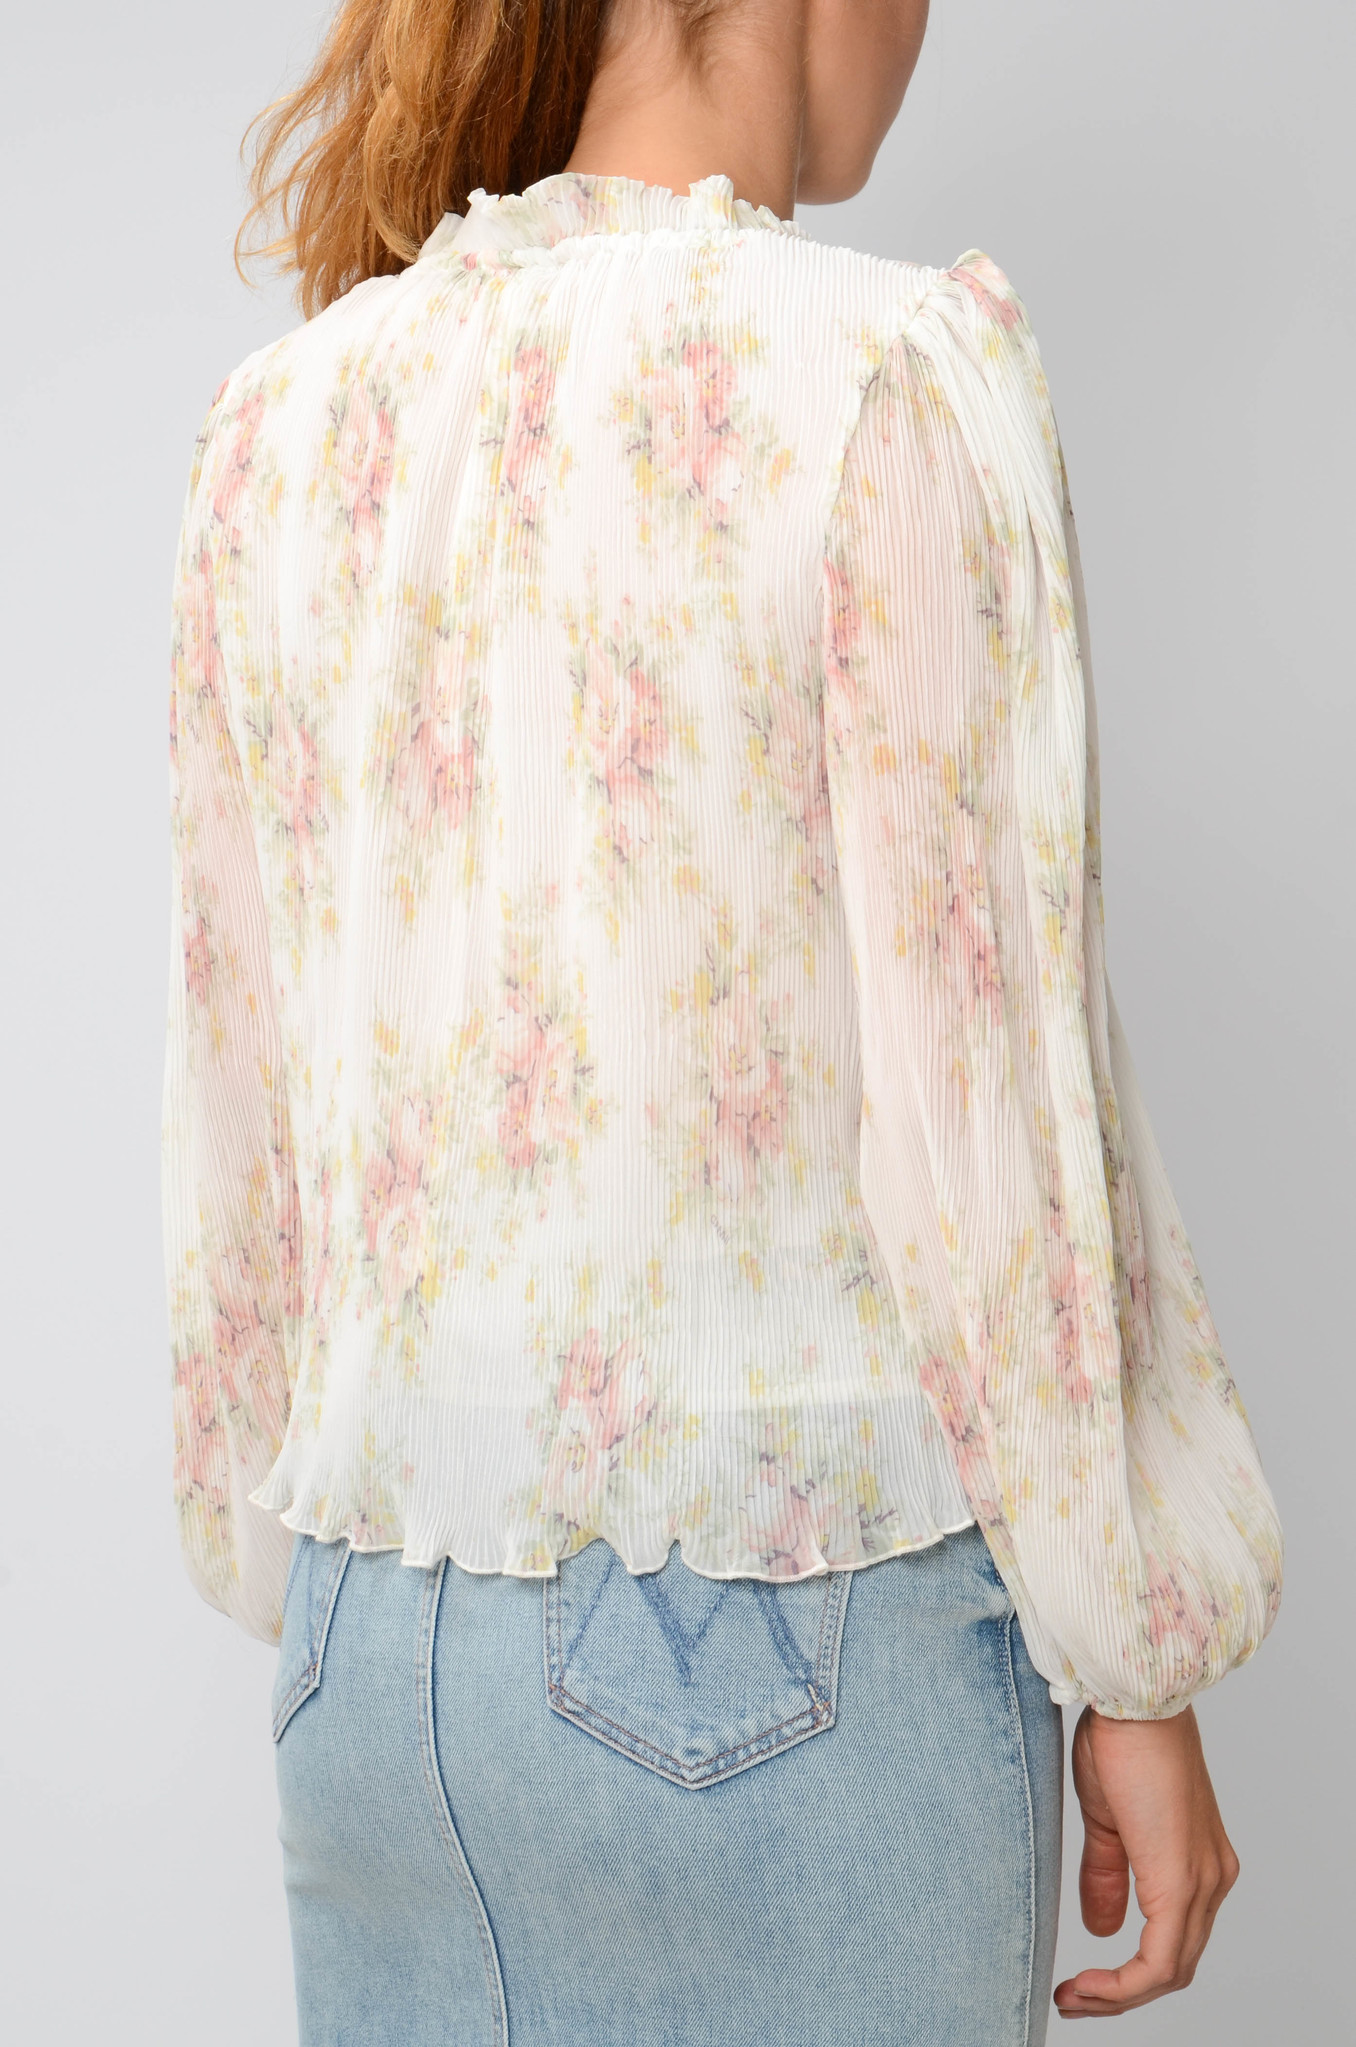 GEORGETTE PLEATED BLOUSE-5